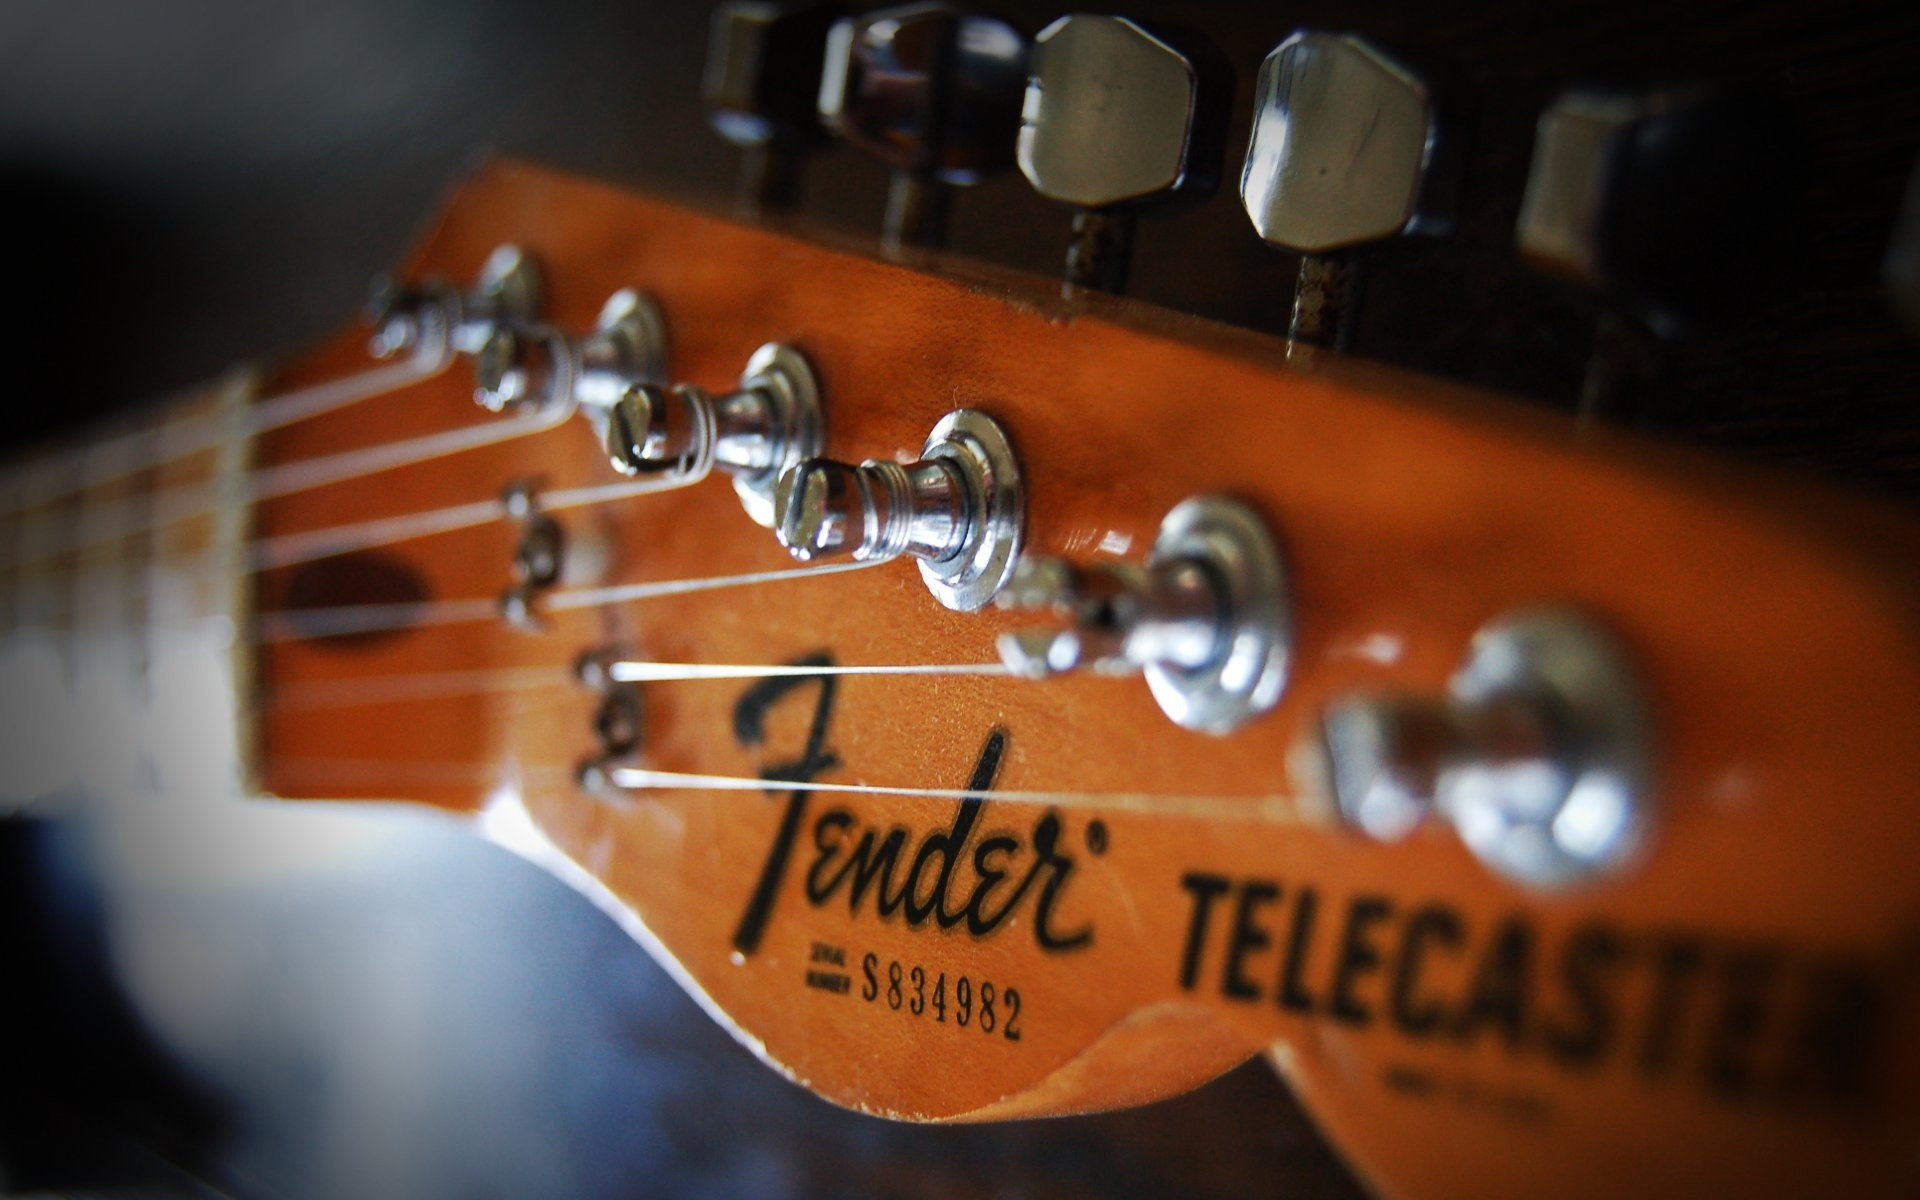 The tip of Mr Fender Stratocaster | iOS Wallpapers | Pinterest | Fender  stratocaster and iOS